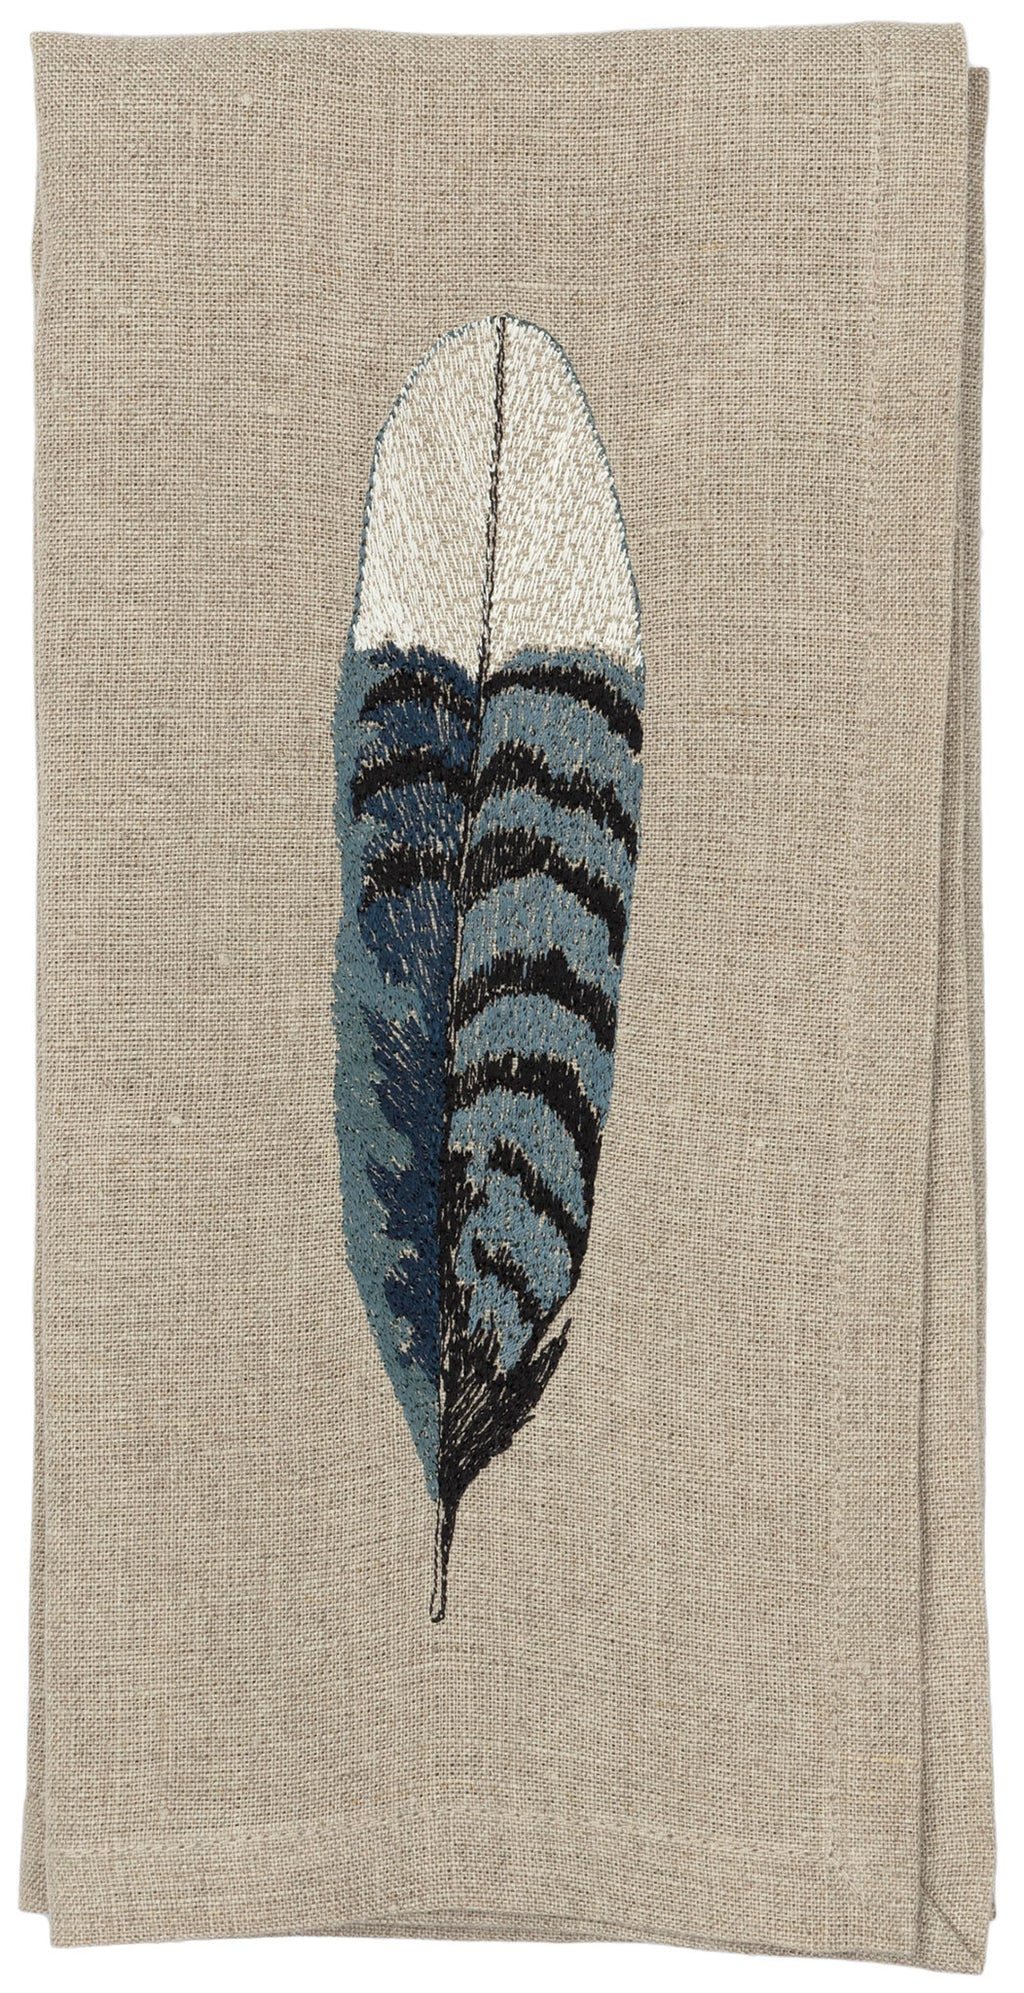 Dinner napkin with corner embroidery of blue jay bird feather.